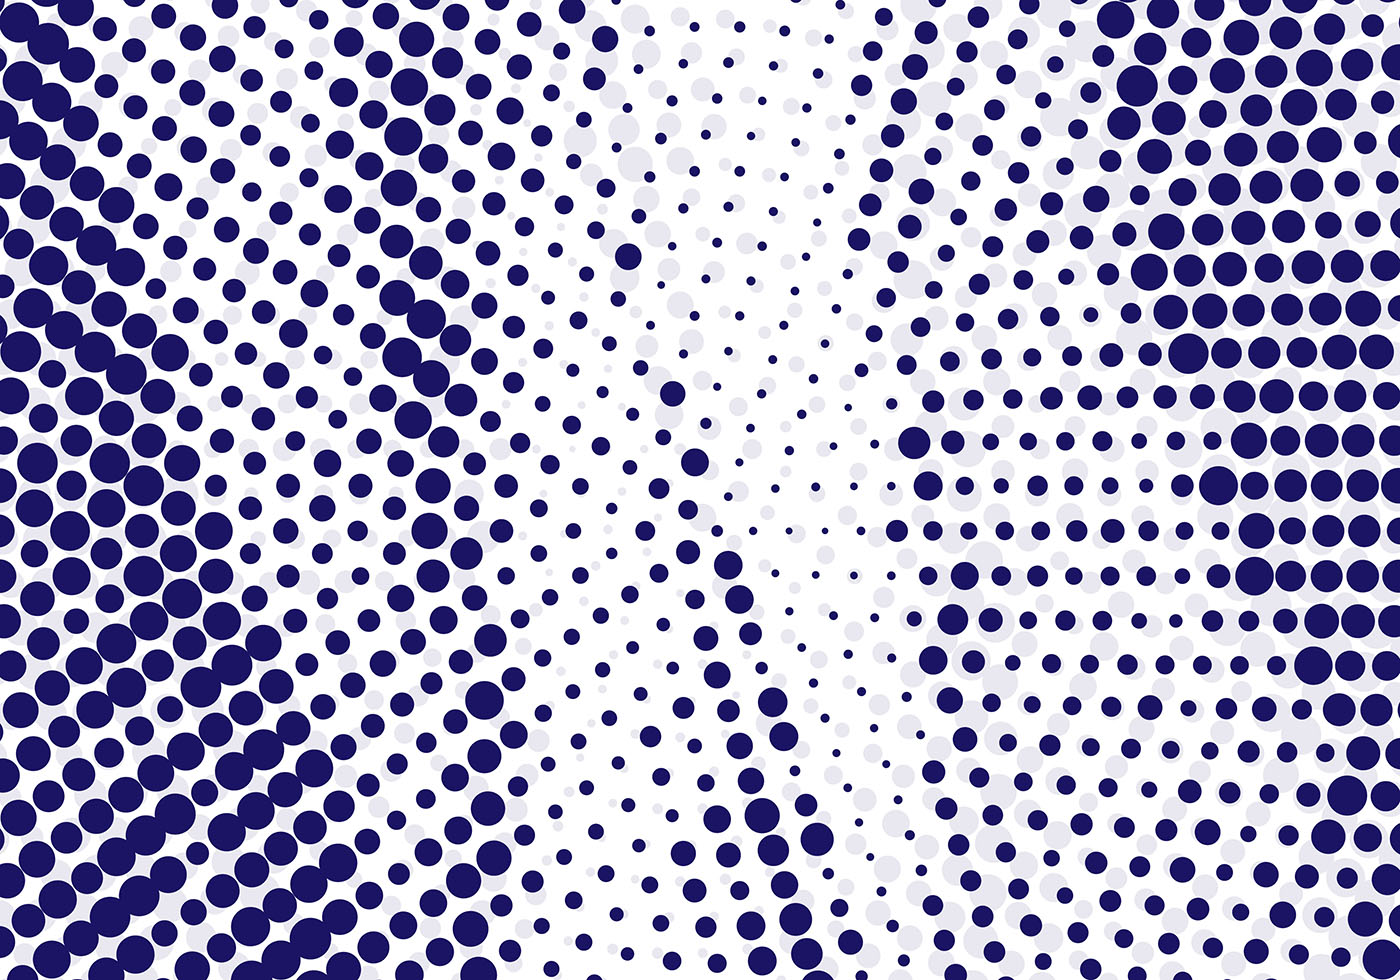 3d Wallpaper Squares Free Vector Halftone Background Download Free Vector Art